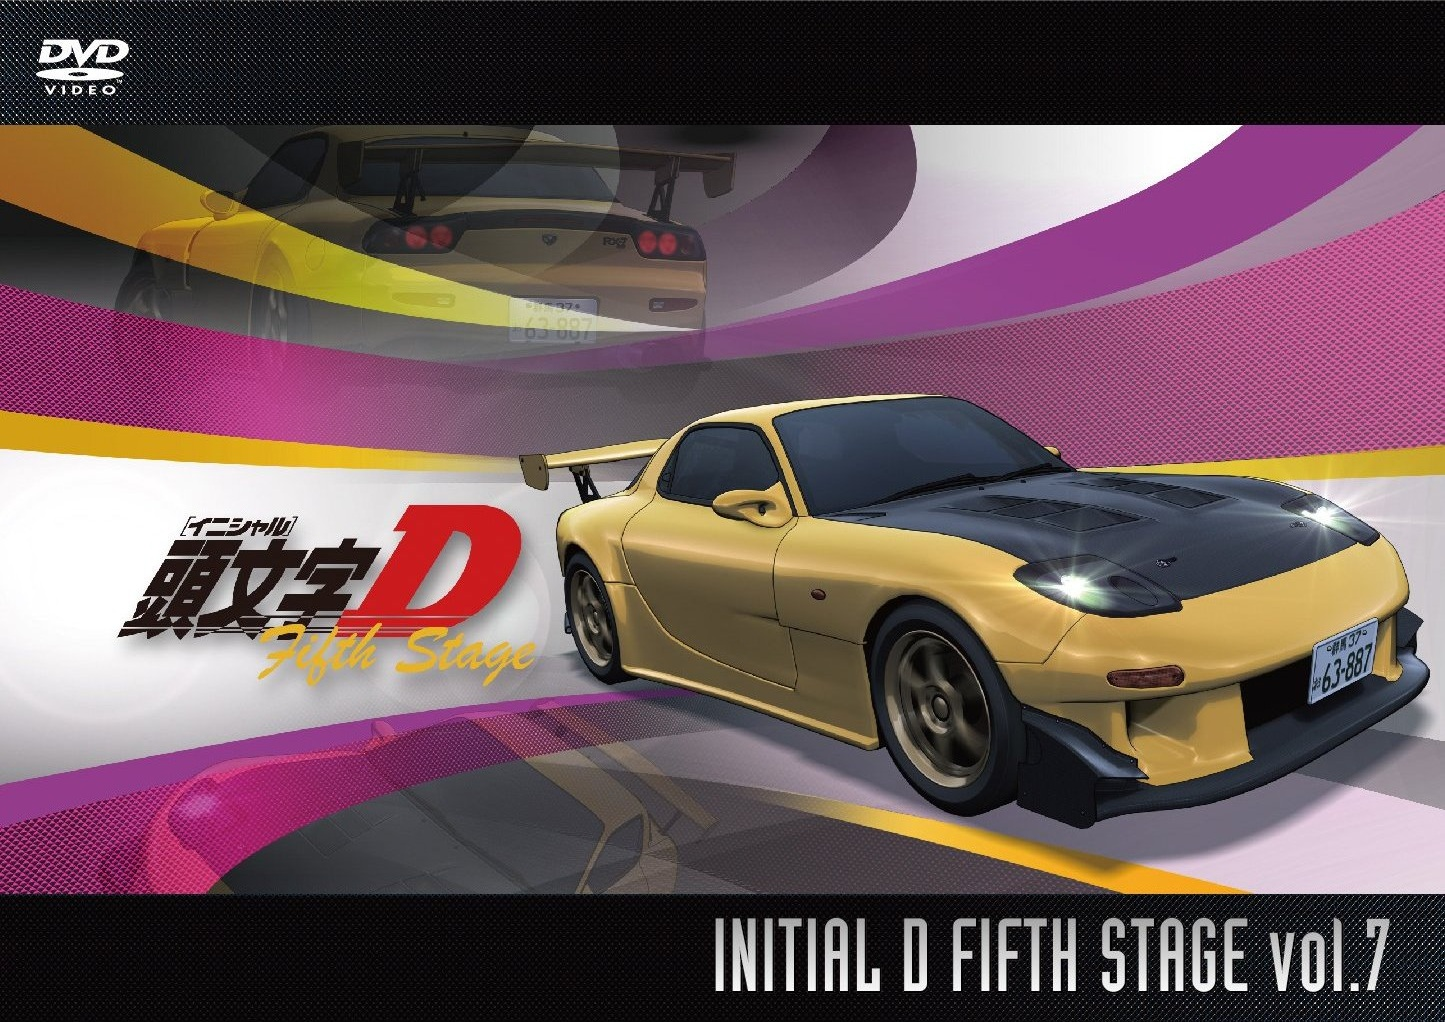 Visuel du 7e DVD japonais d'Initial D Fifth Stage